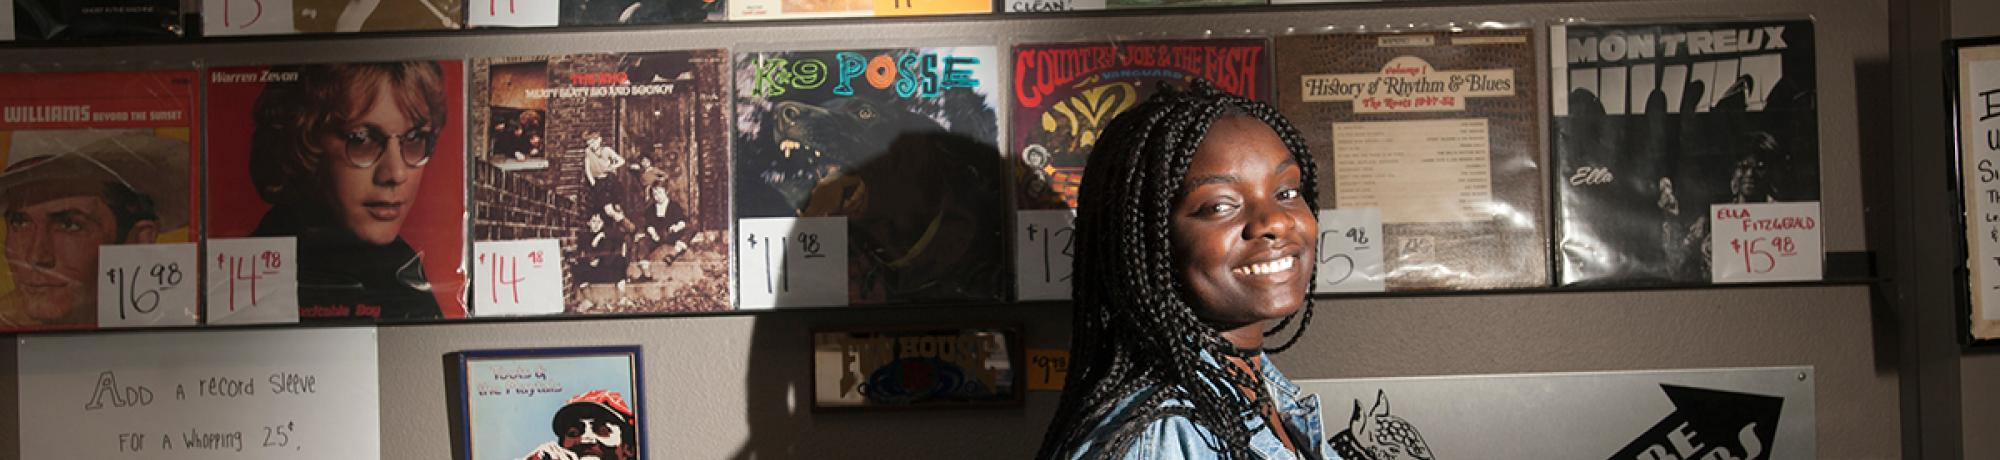 Fulbright award winner Amanda Eke, a senior with B.A. in gender, sexuality and women's studies.